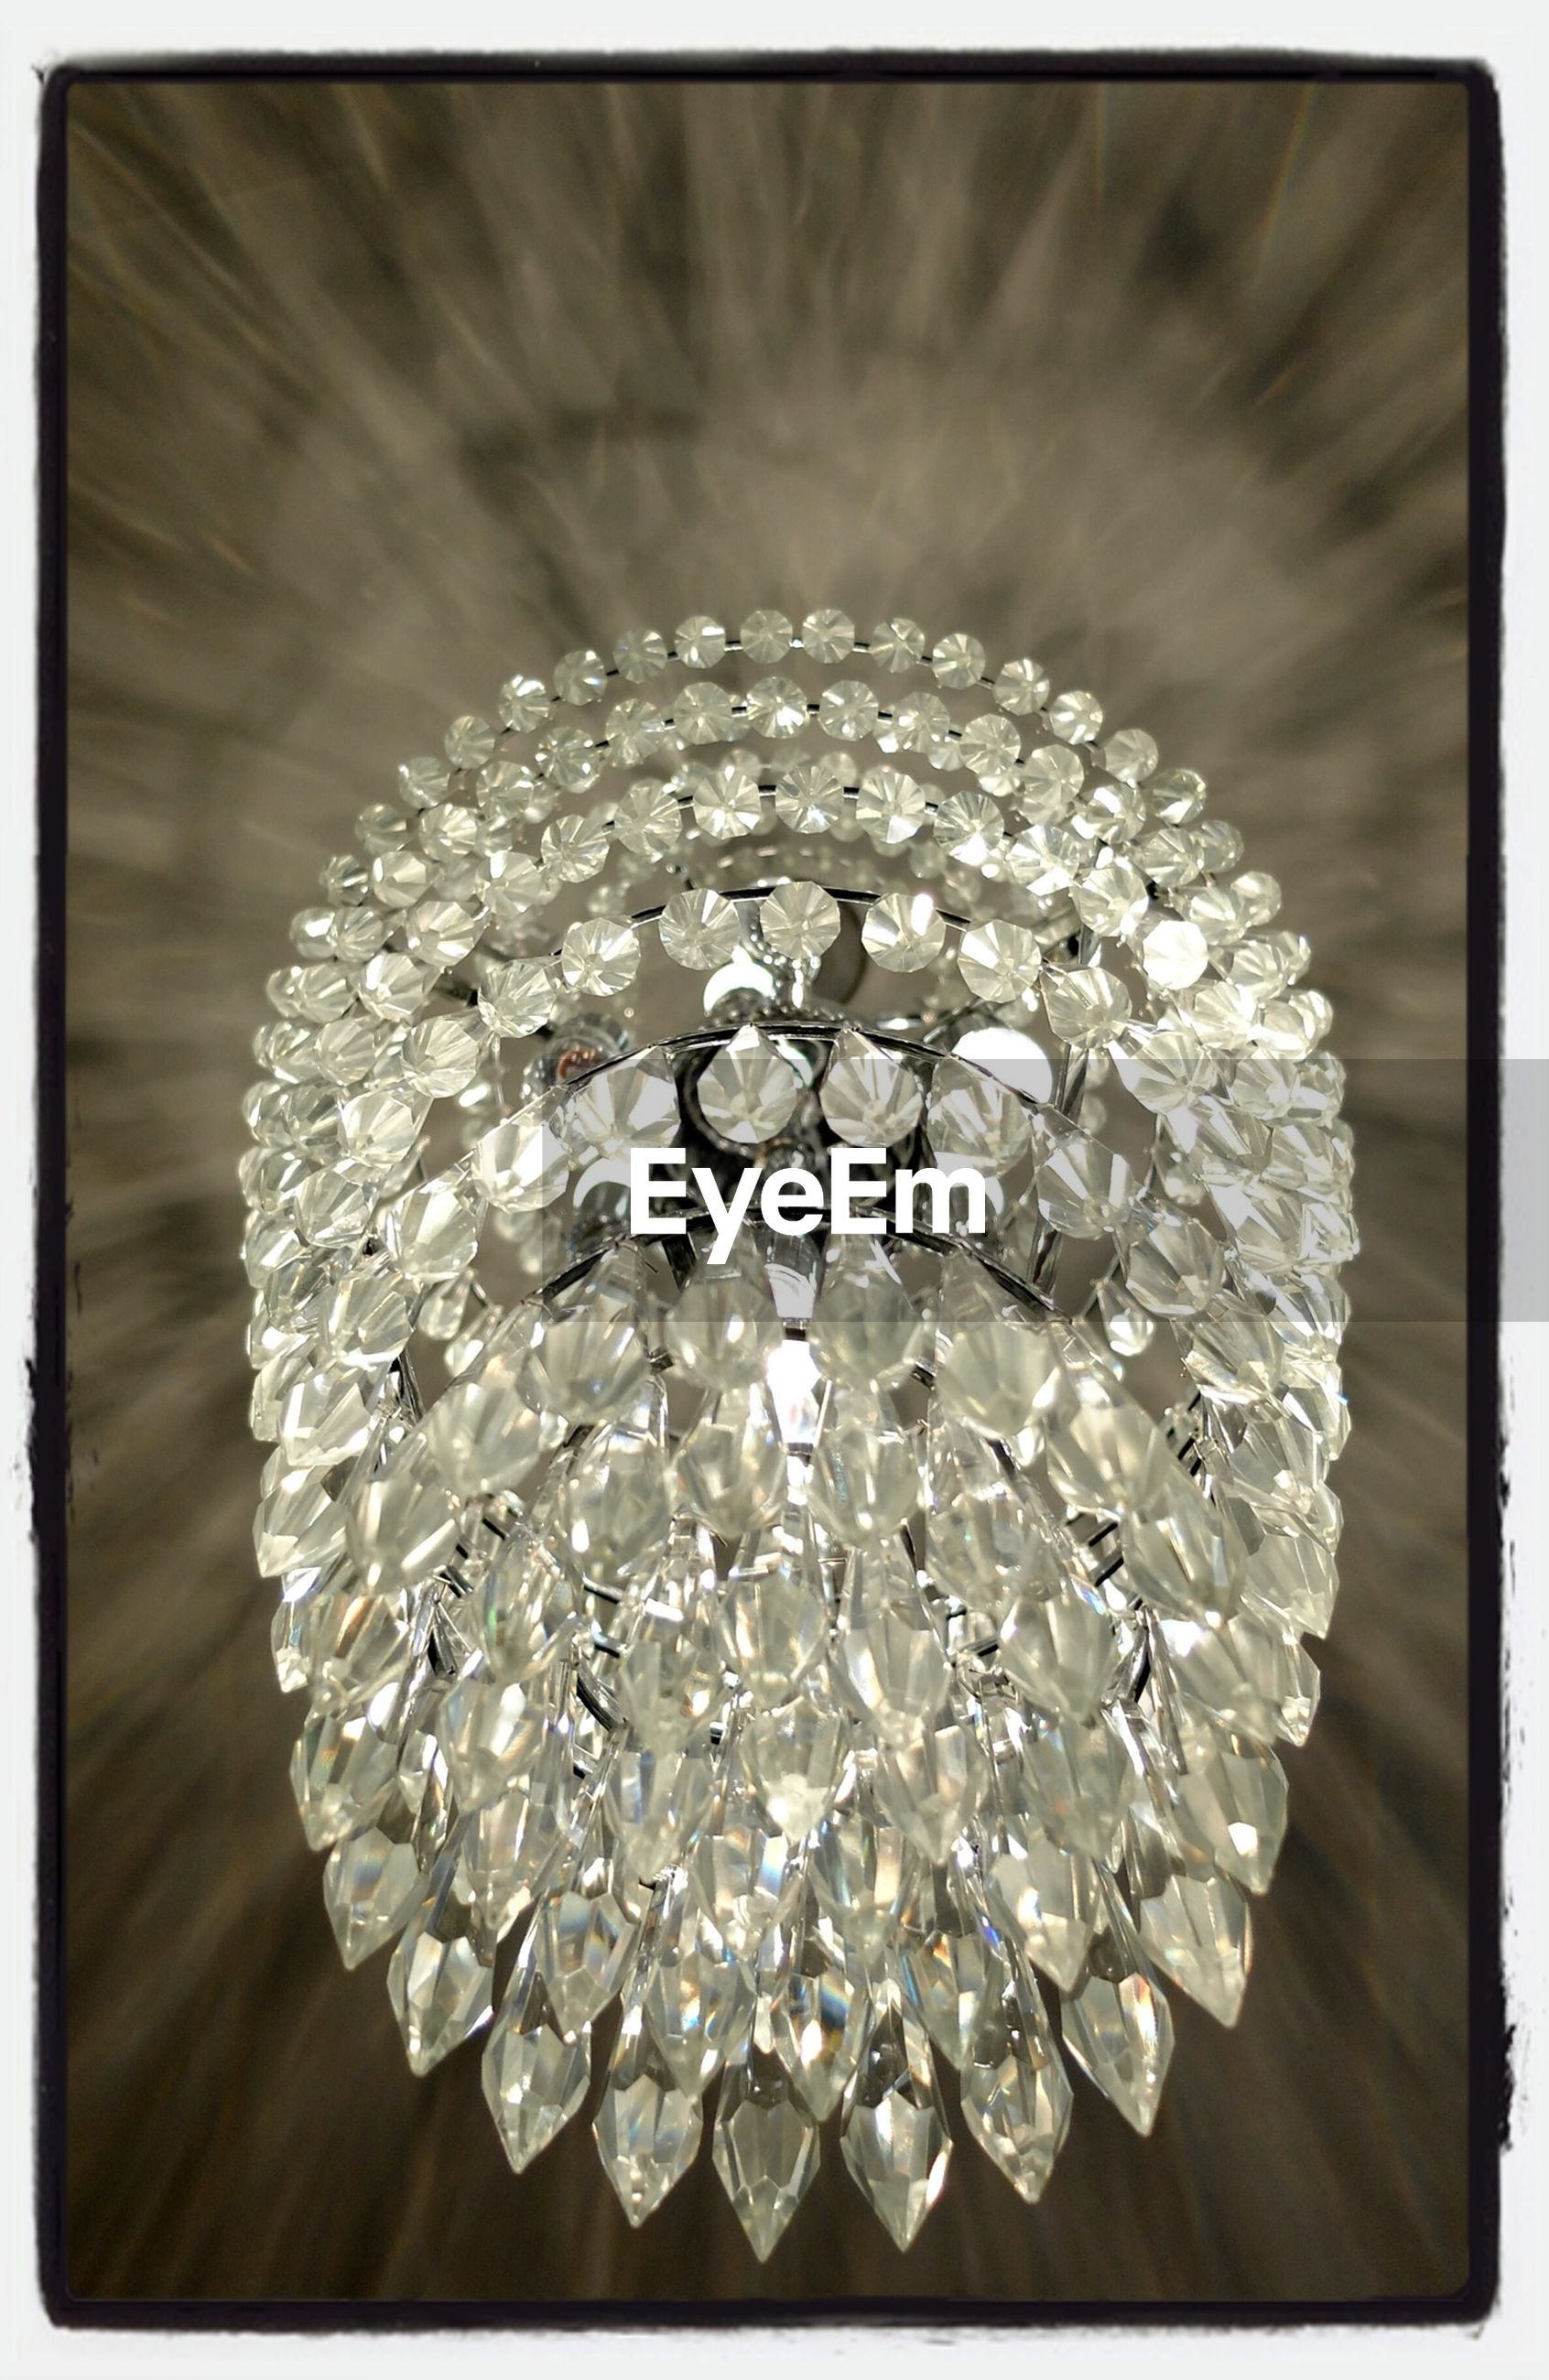 transfer print, auto post production filter, indoors, close-up, decoration, hanging, celebration, decor, low angle view, lighting equipment, christmas, circle, ceiling, no people, crystal, pattern, shape, still life, chandelier, christmas decoration